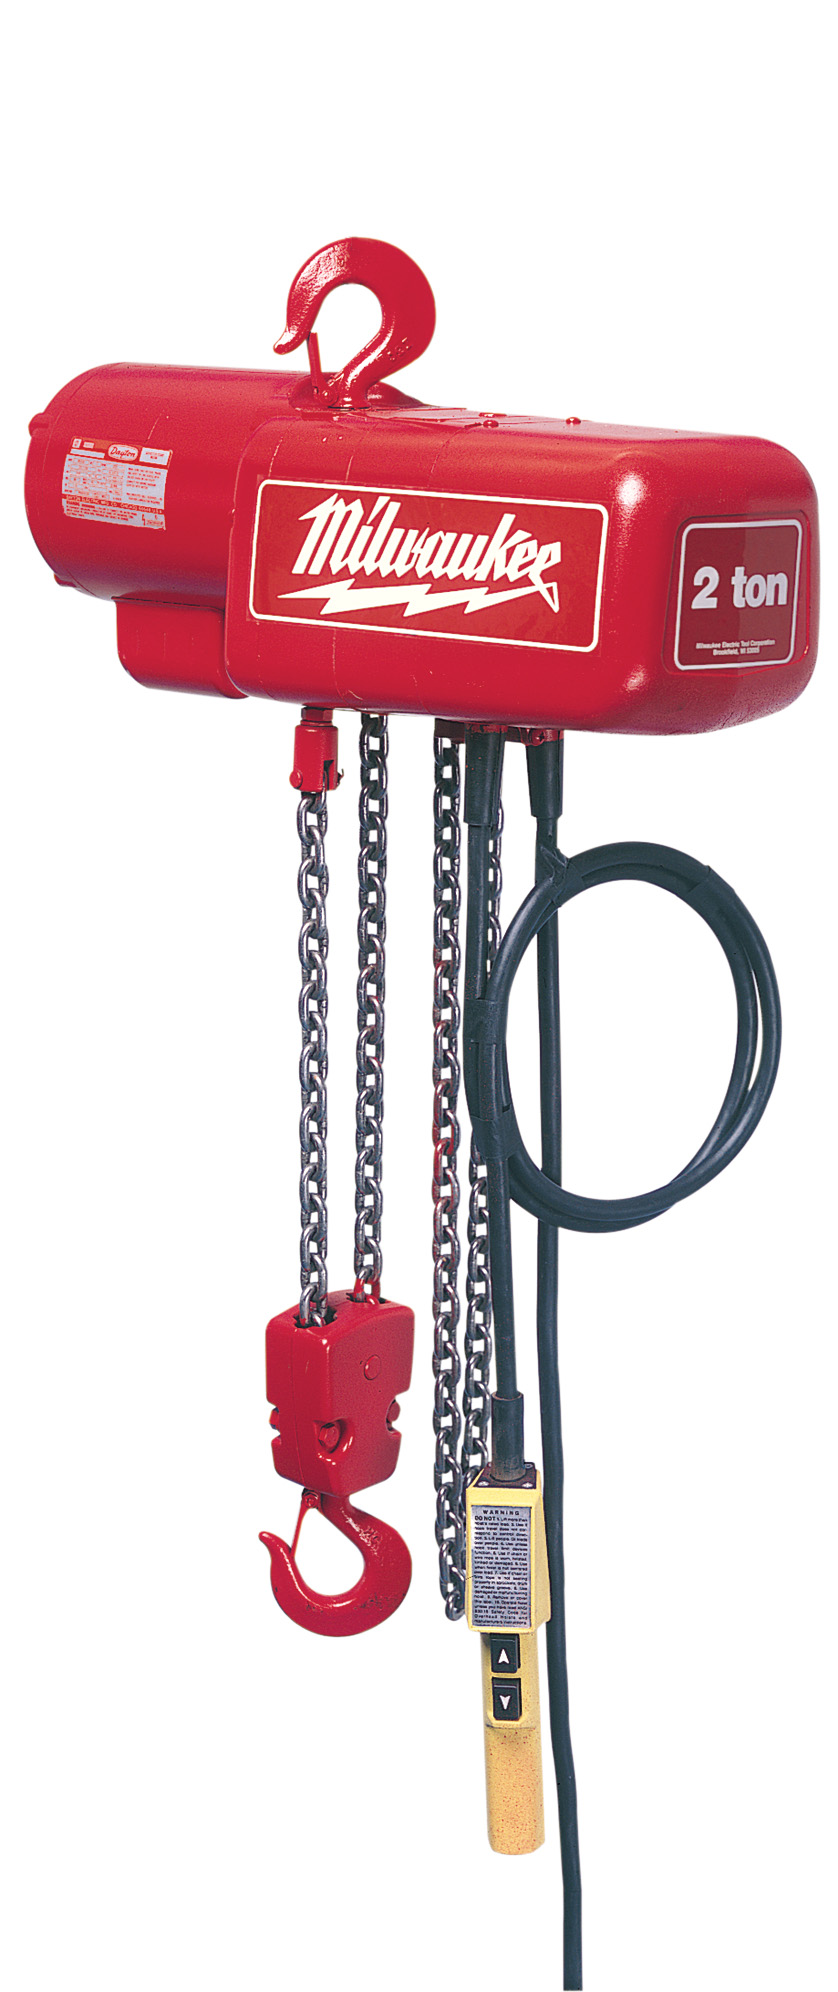 Milwaukee® 9567 1-Phase Lightweight Electric Chain Hoist, 1 ton Load, 15 ft H Lifting, 1 hp Power Rating, 115 to 230 VAC